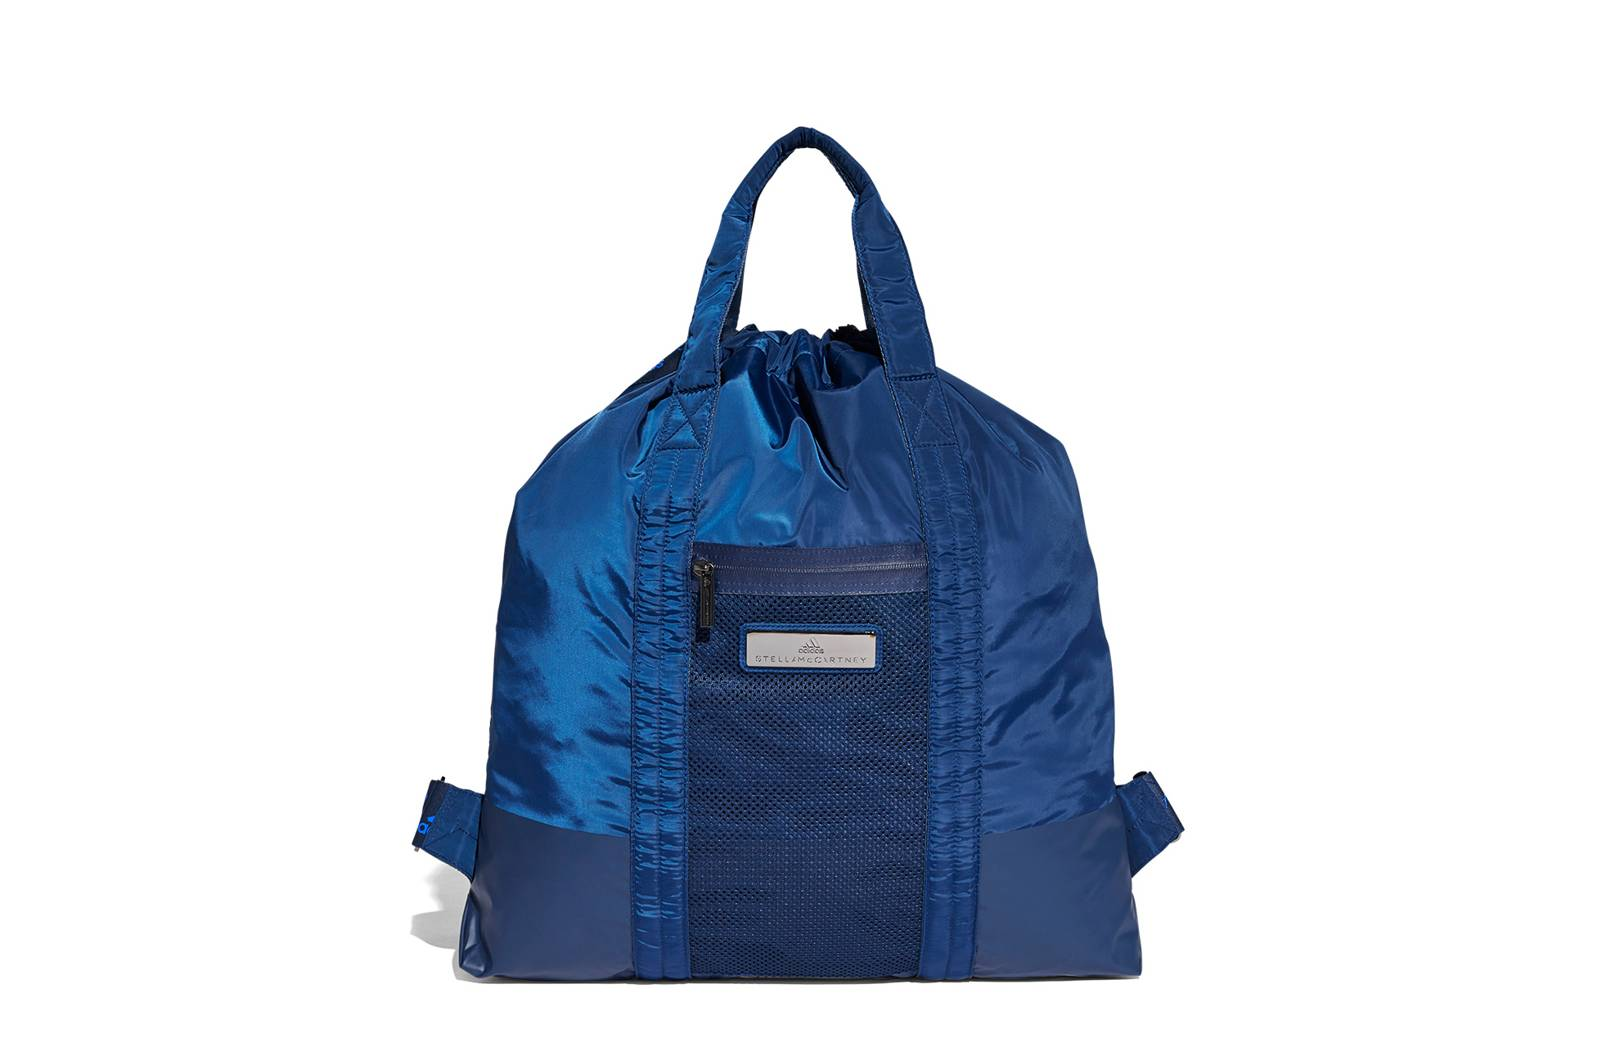 8cc8808454 Gym Bags For Women